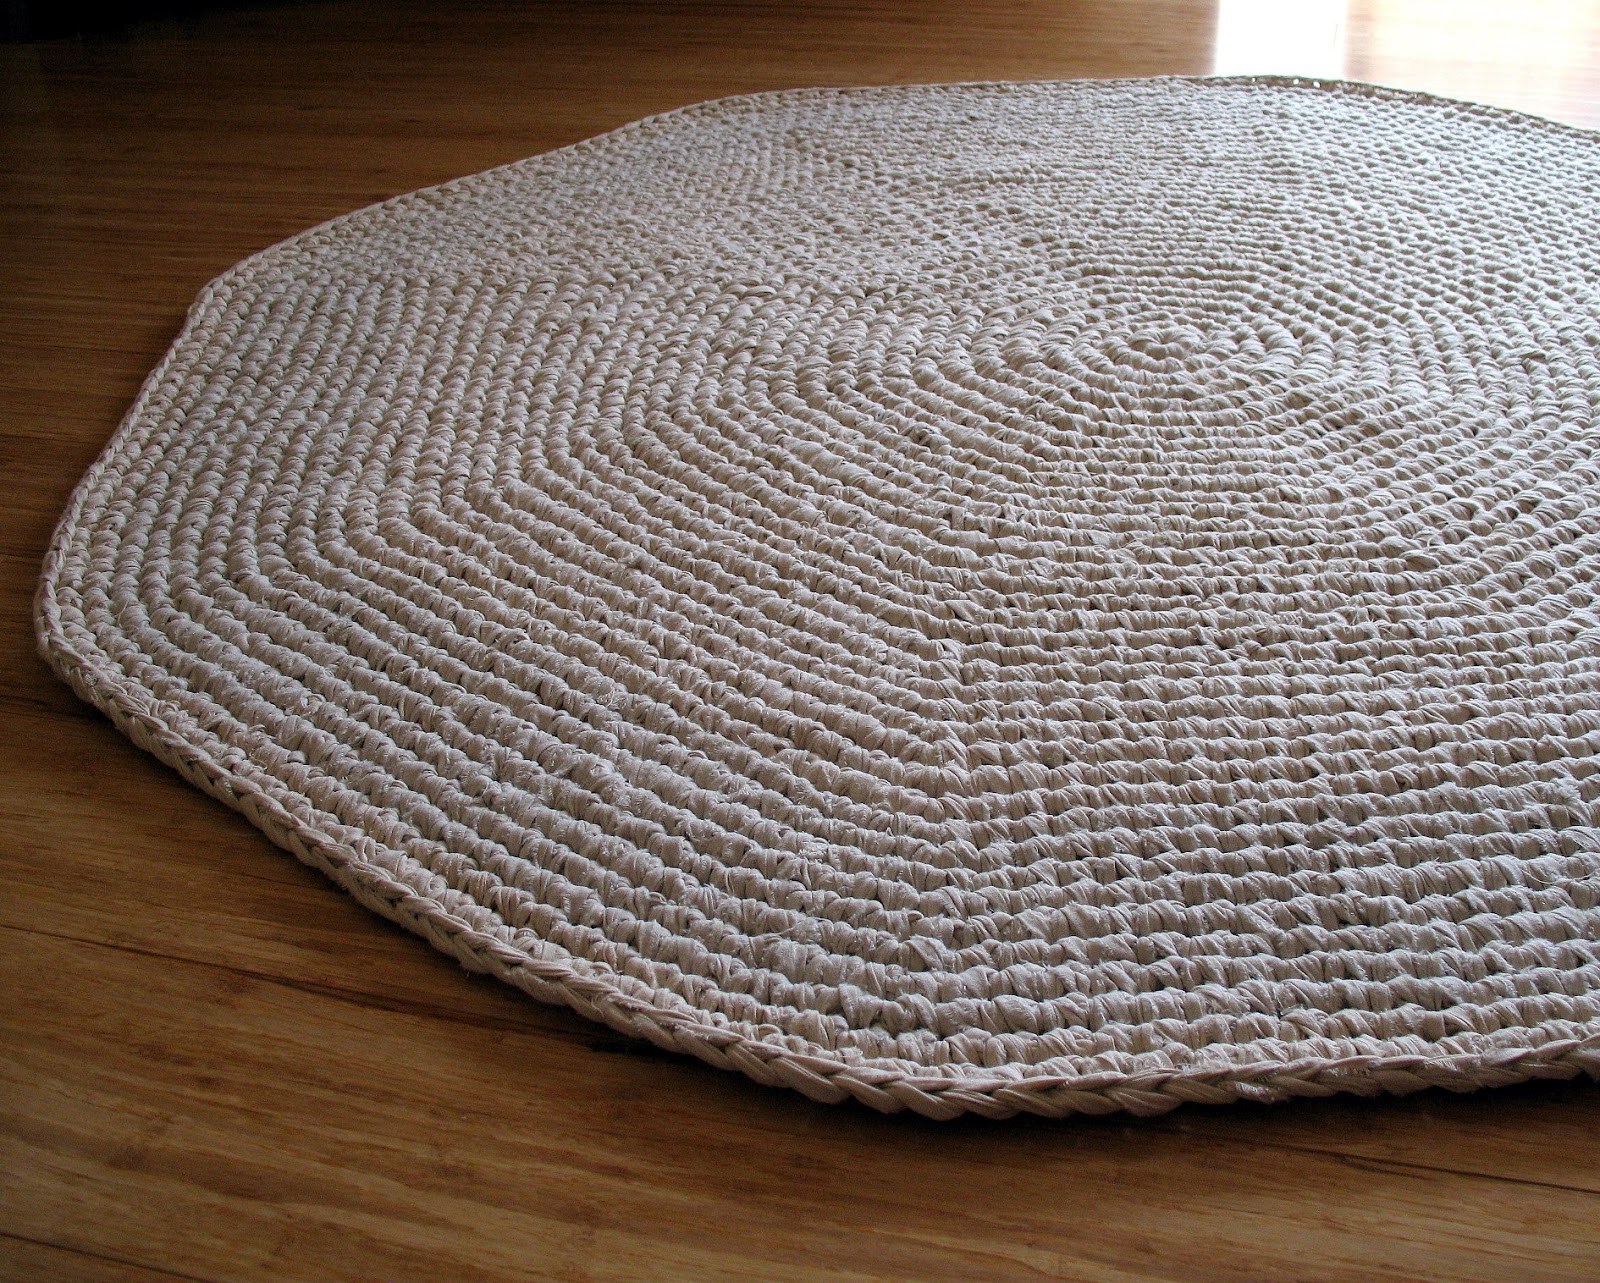 Crocheting Rugs : eclectic me: Calico Crochet Rug & Pattern.....